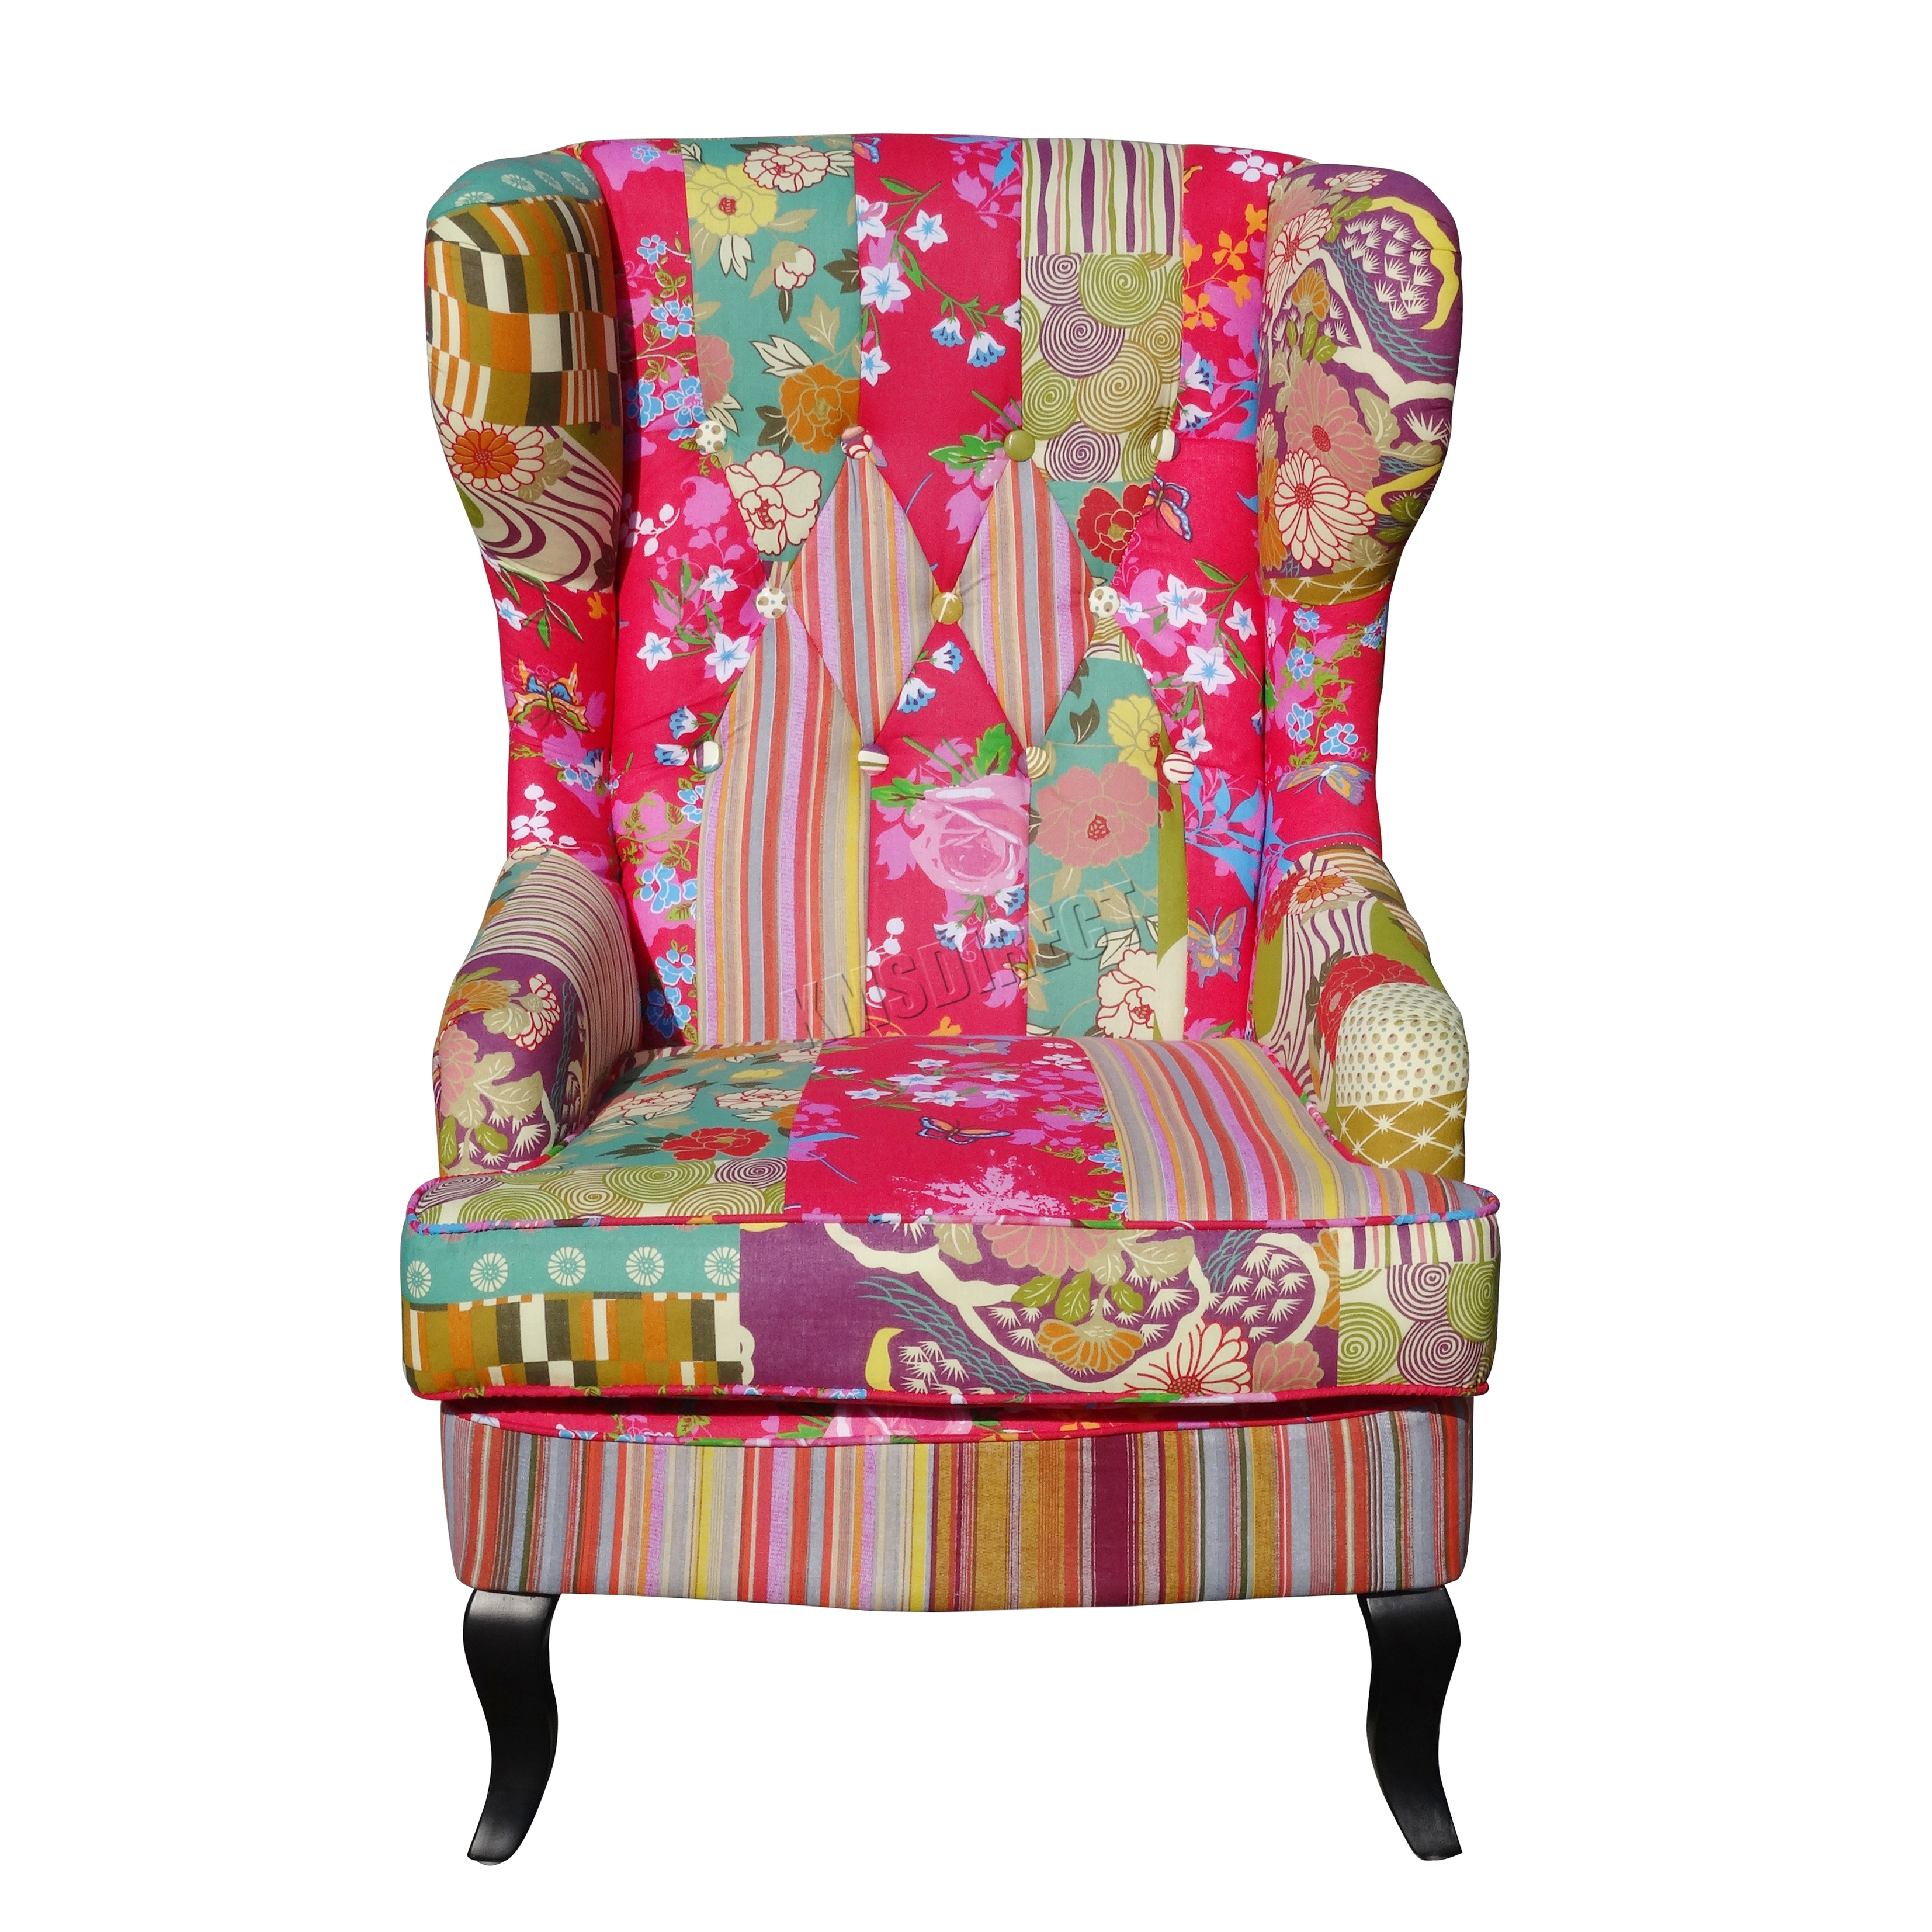 FoxHunter Patchwork Chair Fabric Vintage Armchair Seat ...